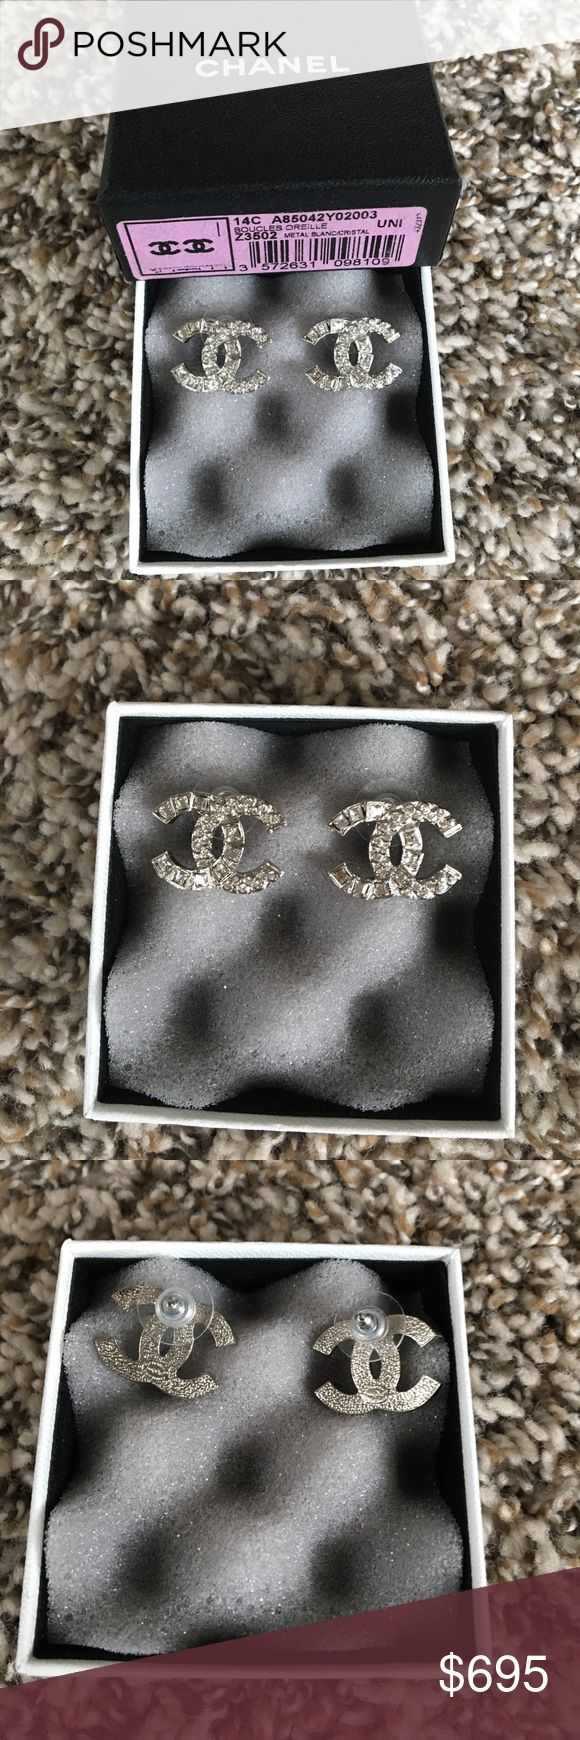 Chanel 14C Earrings Brand new in box. Comes with box and drawstring bag.  Purchased at Chanel, Neiman Marcus, Houston Galleria.  Exclusive item. Reasonable offers only💚 CHANEL Jewelry Earrings